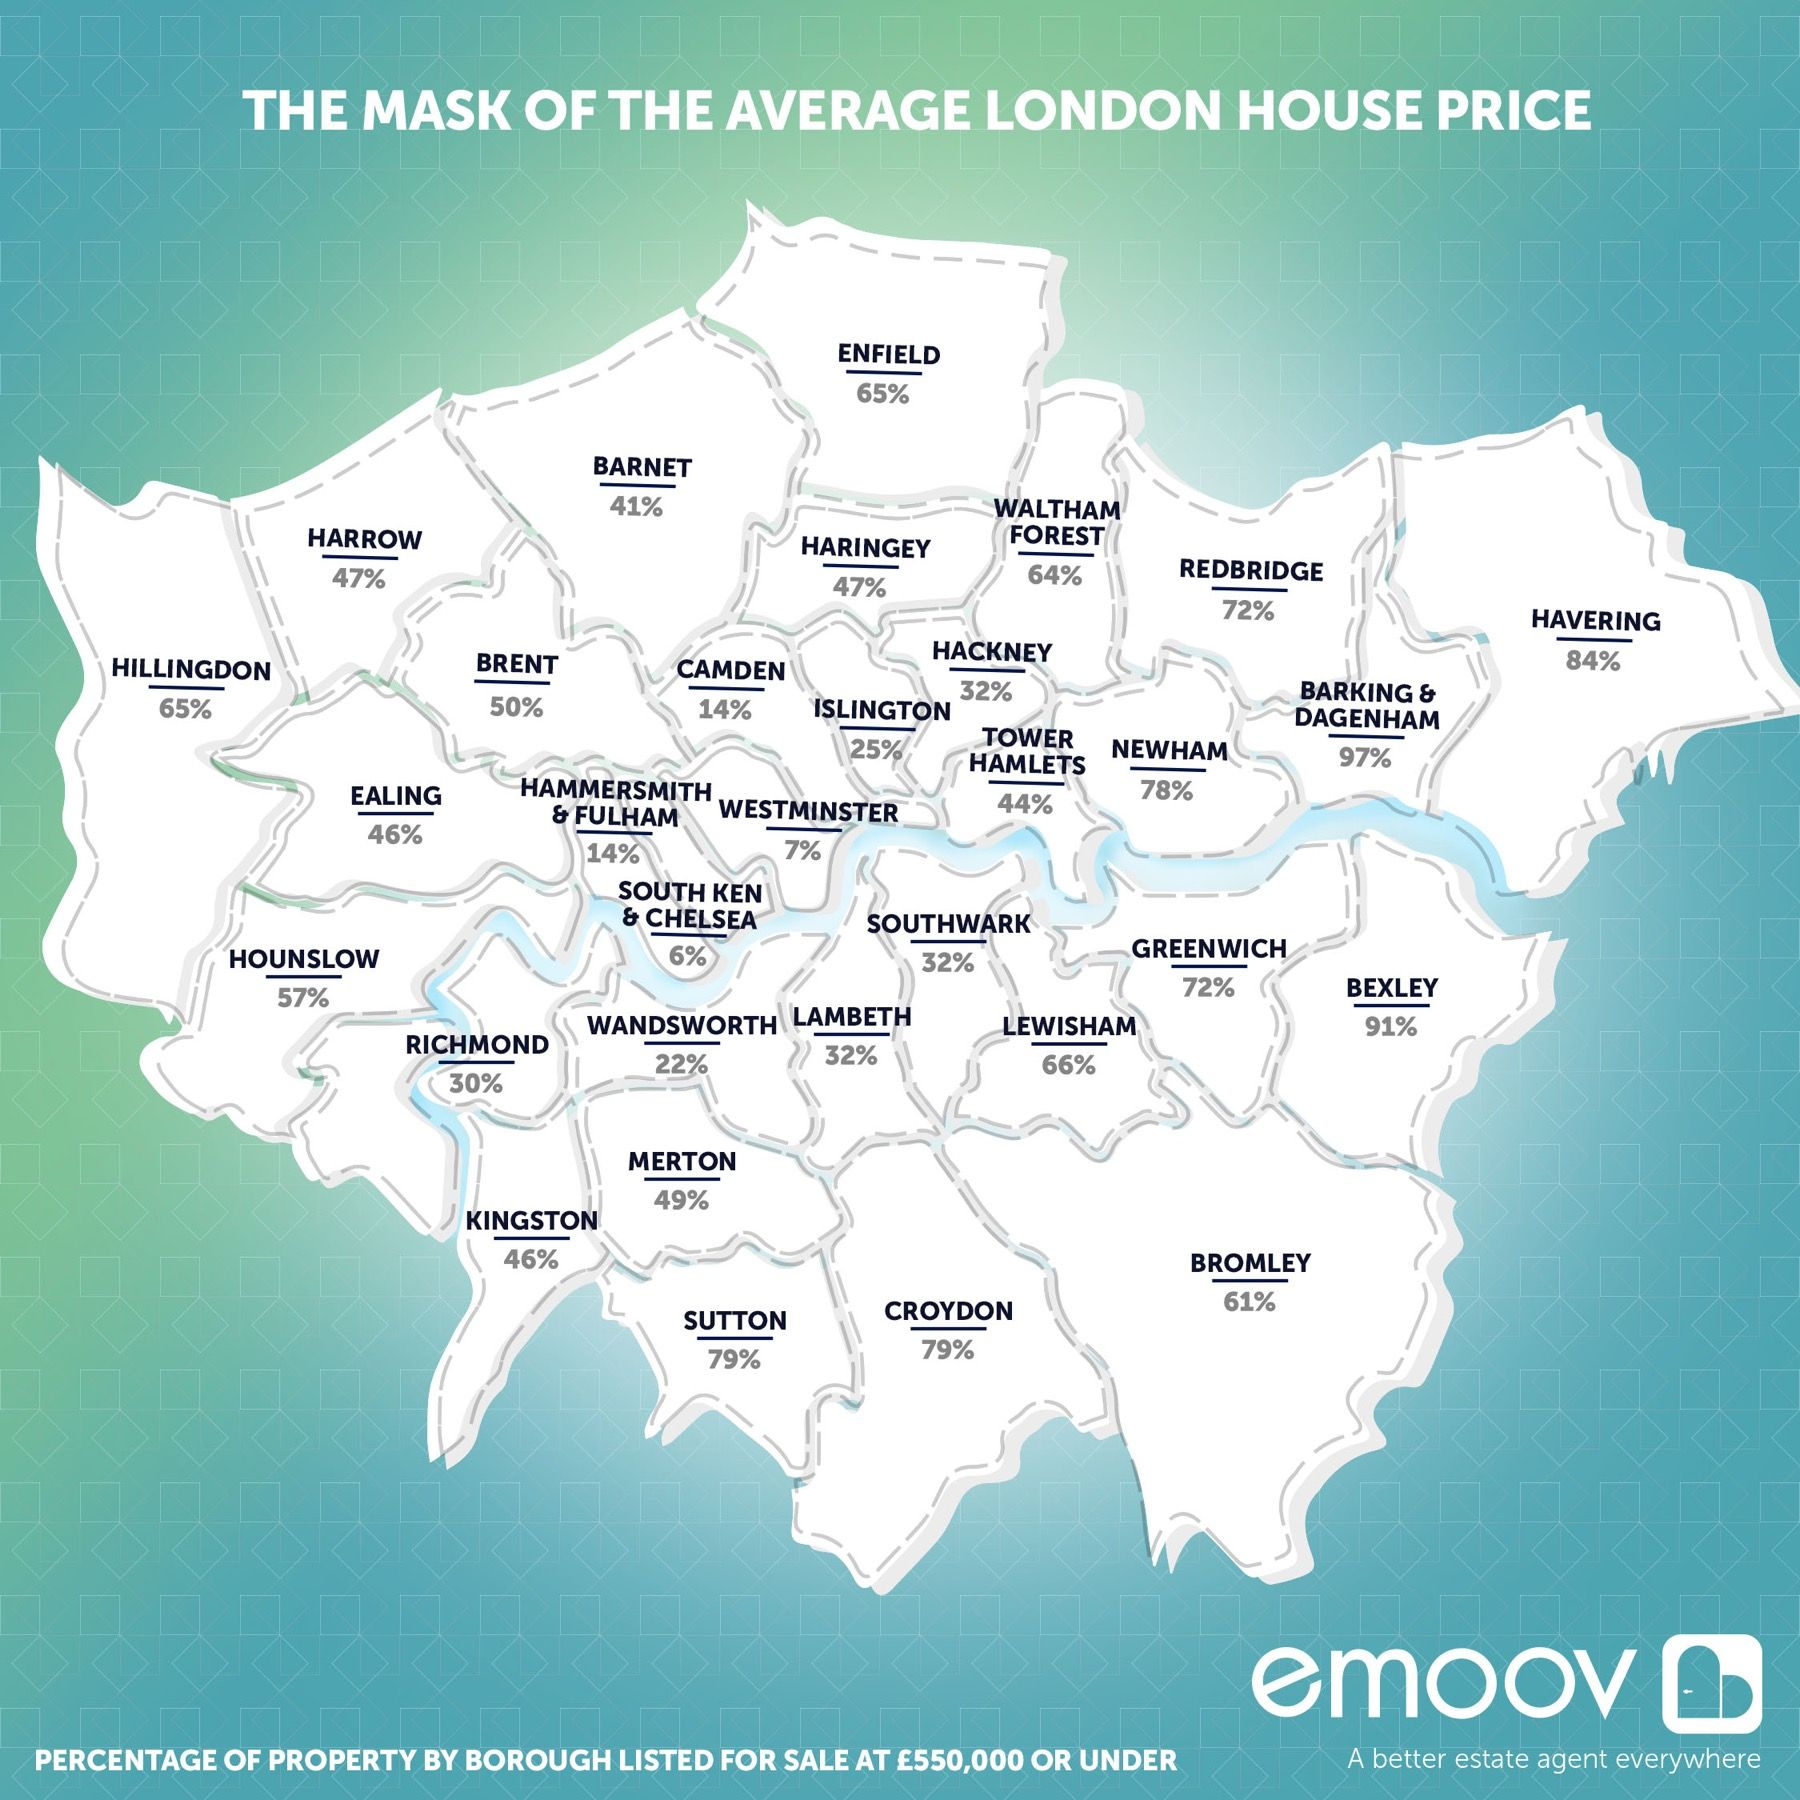 The Mask of the Average House Price